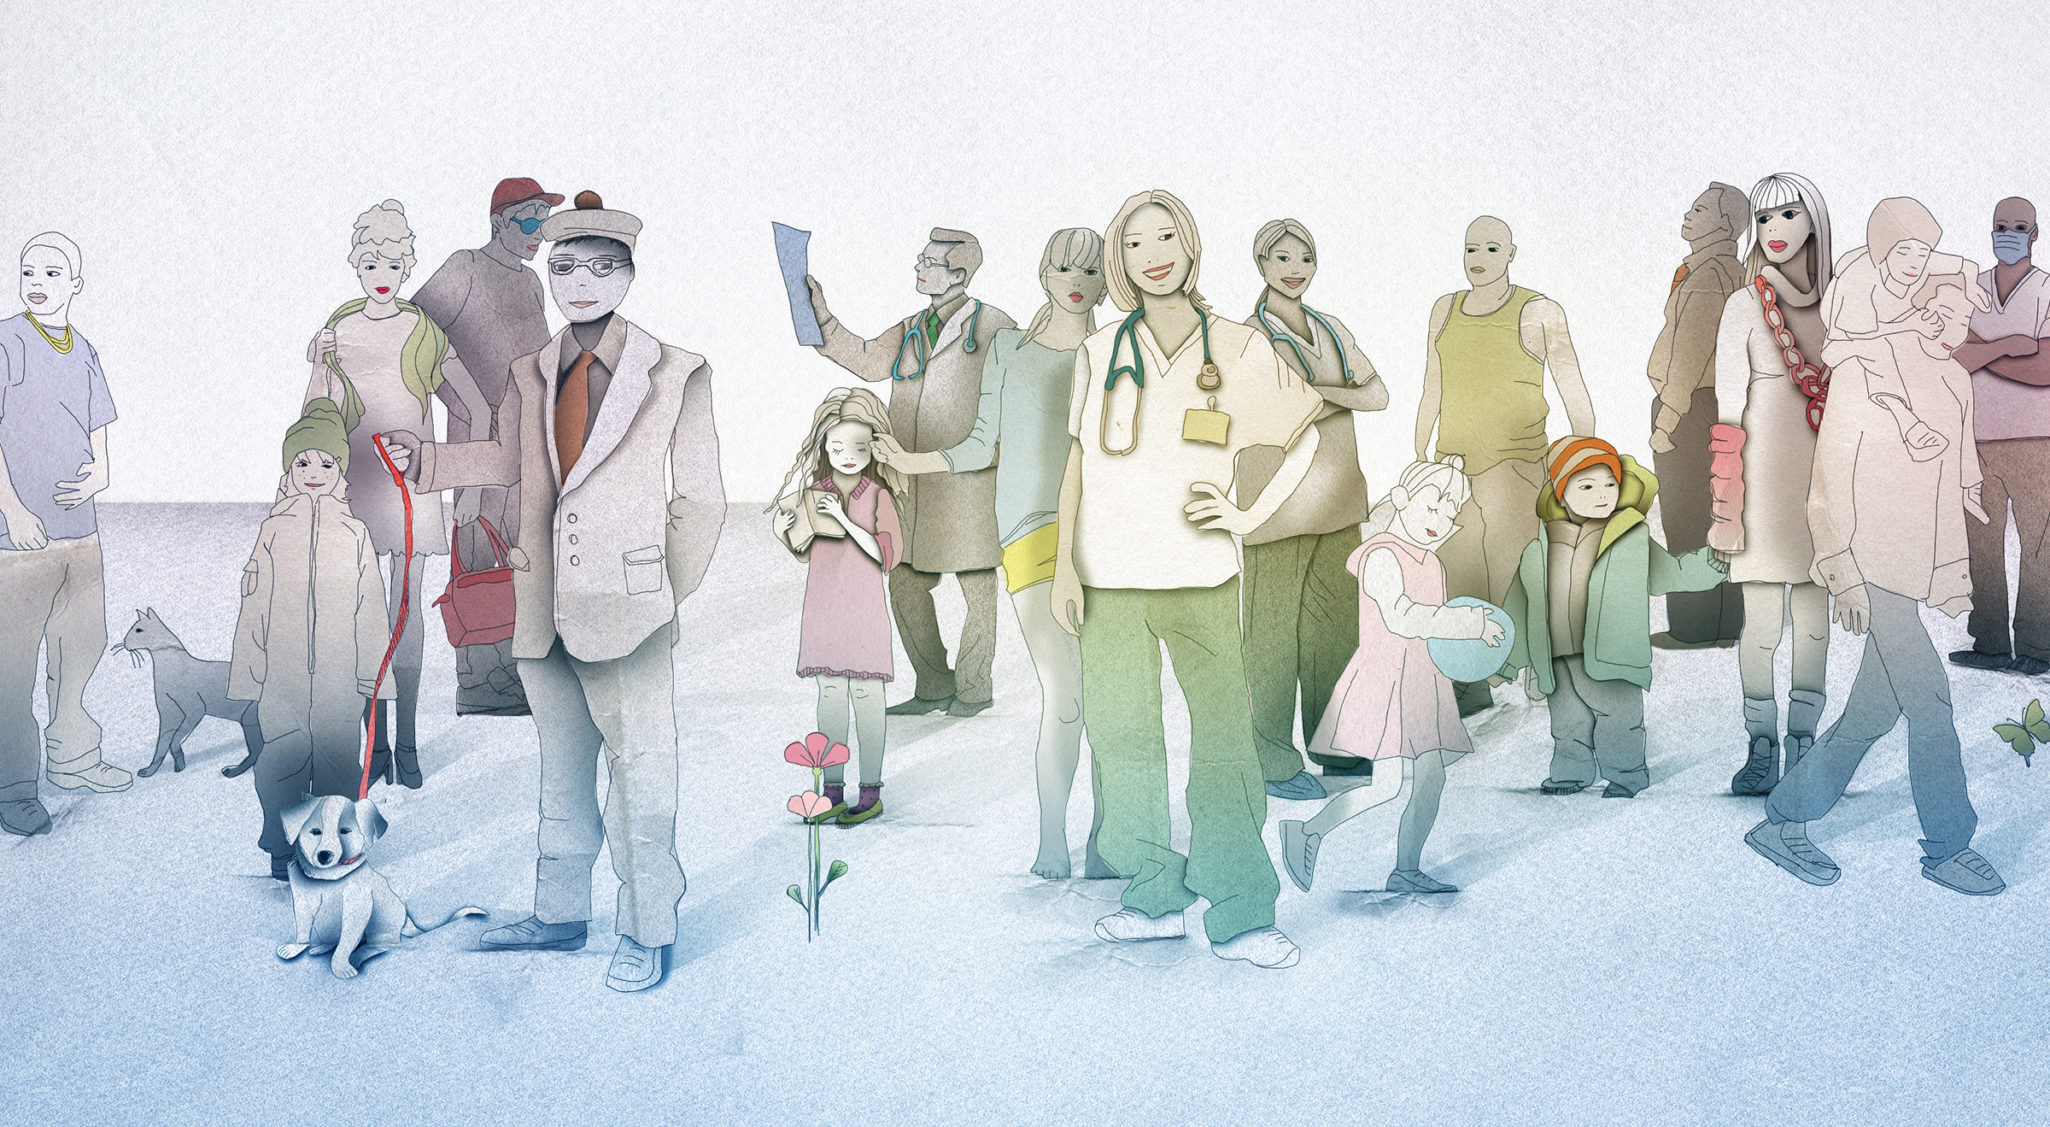 Styleframe for Ohio Healthcare: People illustrations